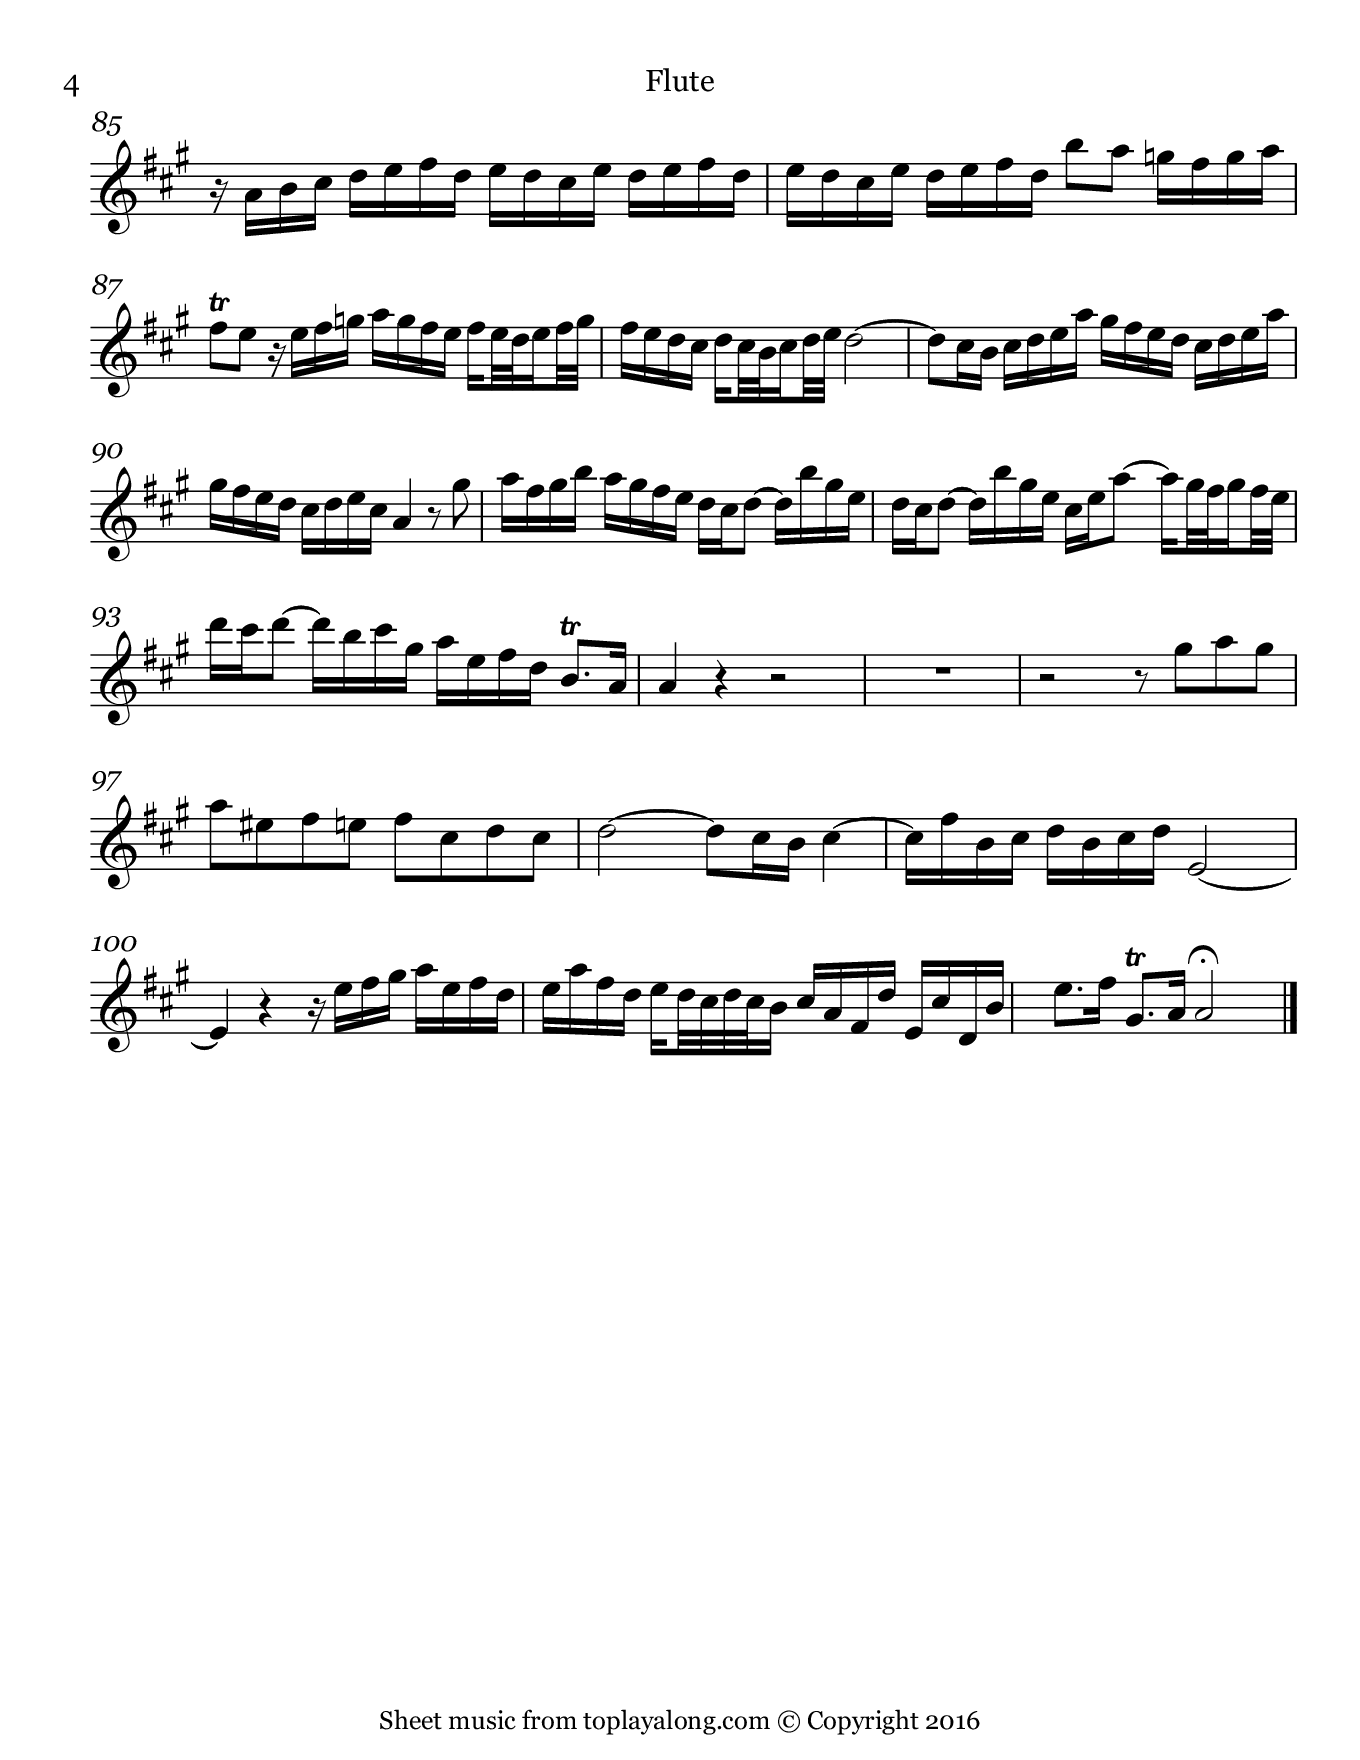 Flute Sonata in A major BWV 1032 (I. Vivace) by J. S. Bach. Sheet music for Flute, page 4.